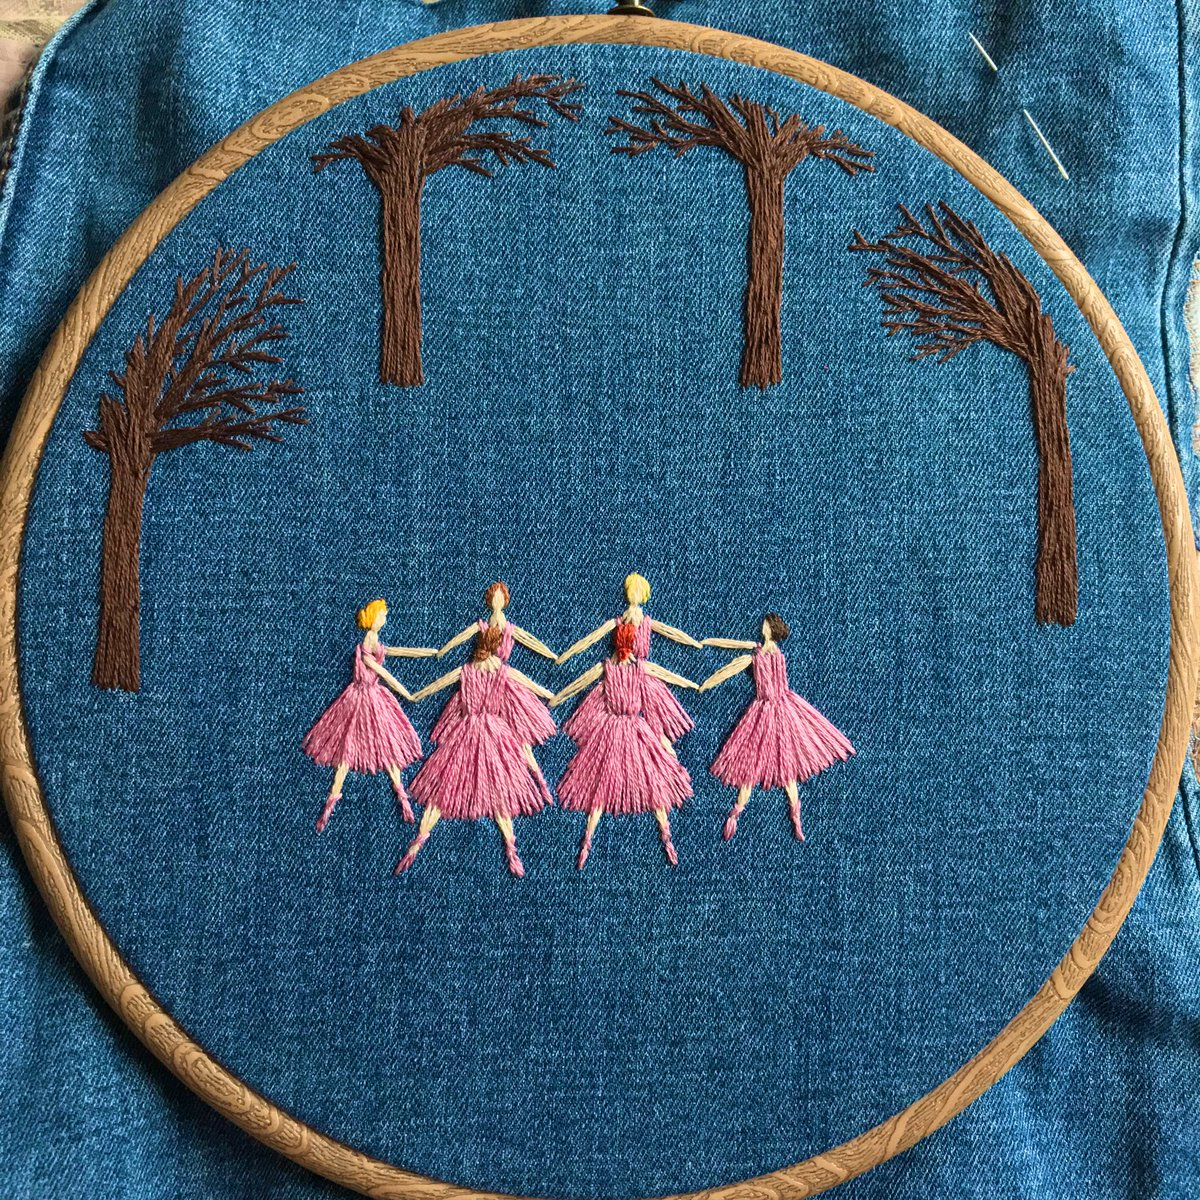 Hey #HandmadeHour 👋🏻. I've started a new ballerina piece... Lots still to do but what do you think so far? 🧵🌿#wip #artprocess #stitchedart #embroidery #ballet #dance #upcycled #textileart #thesewingsongbird https://t.co/F6ufTxfKxd